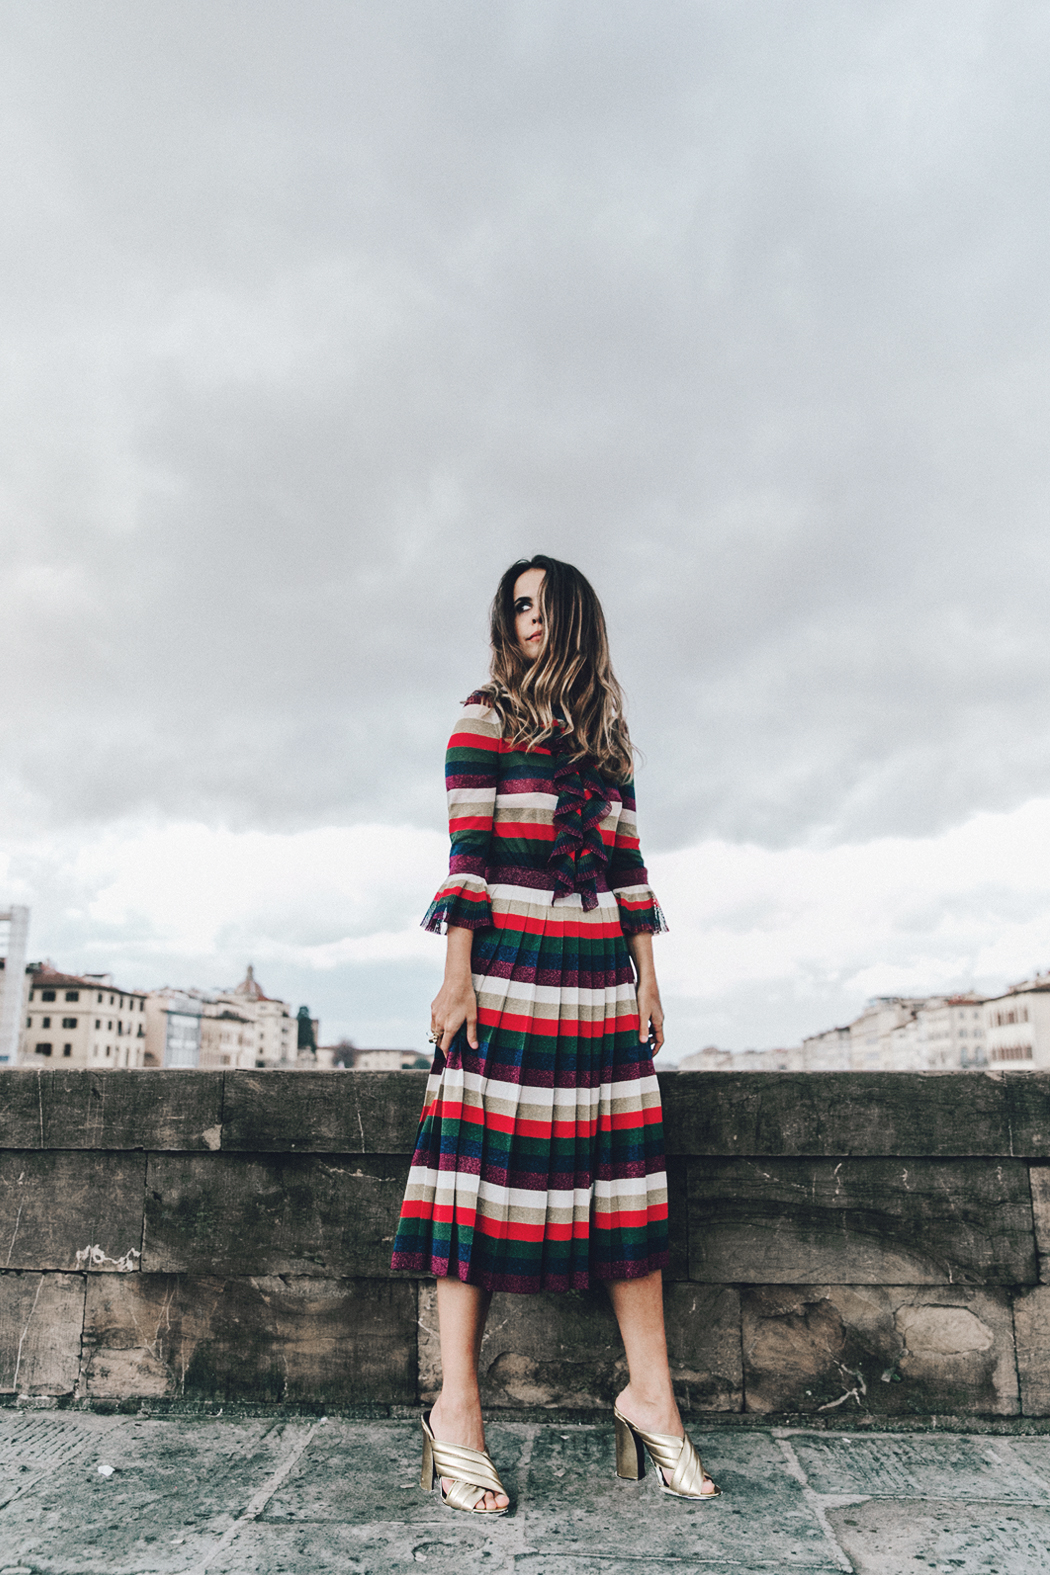 Firenze4Ever-Luisa_VIa_Roma-Gucci_Striped_Dress-Gucci_Gold_Sandals-Outfit-Florence-Street_Style-52